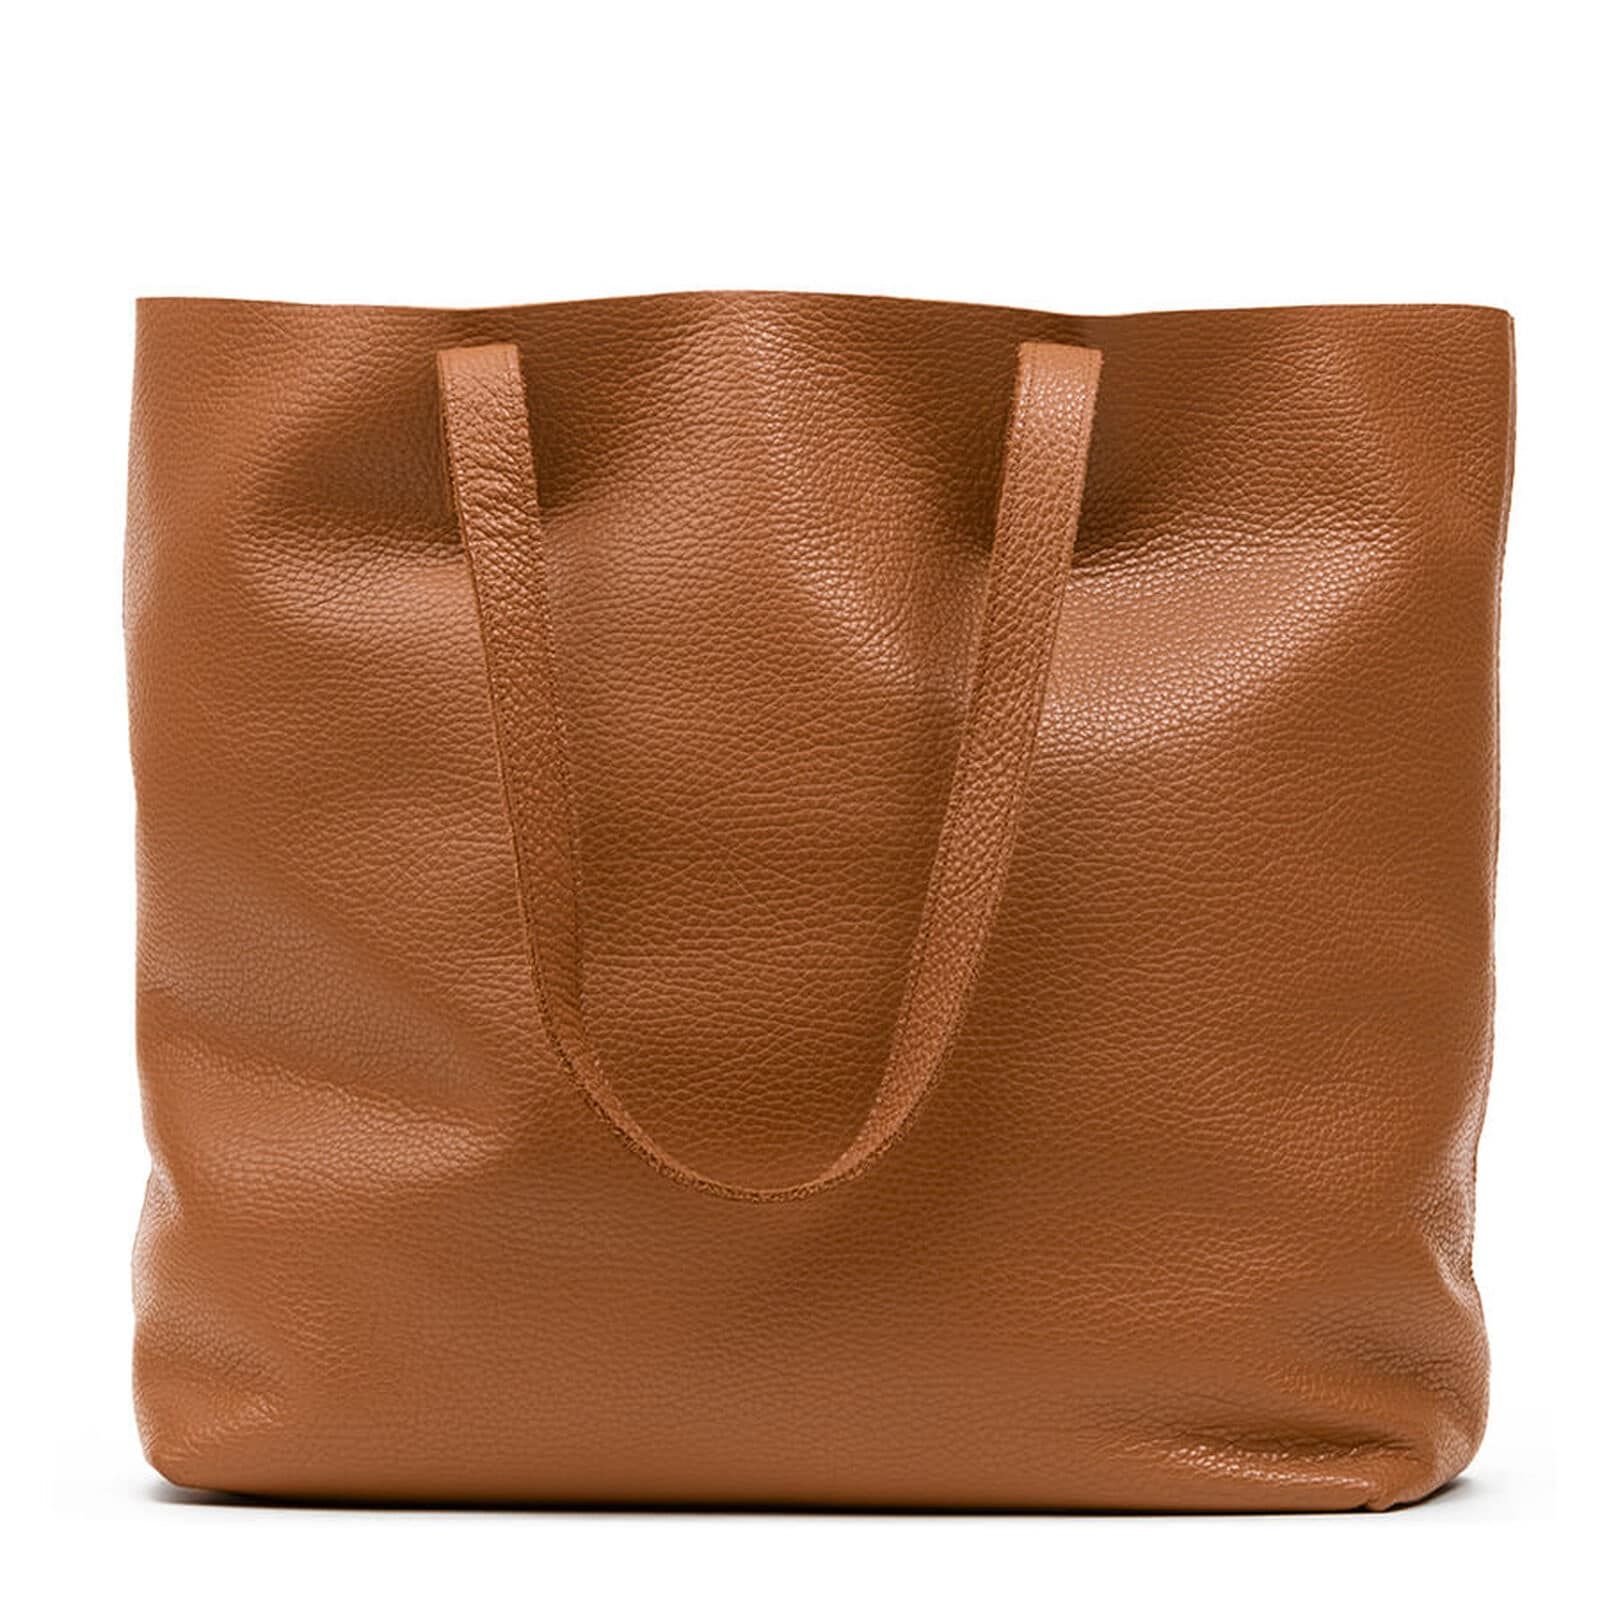 cuyana-leather-tote